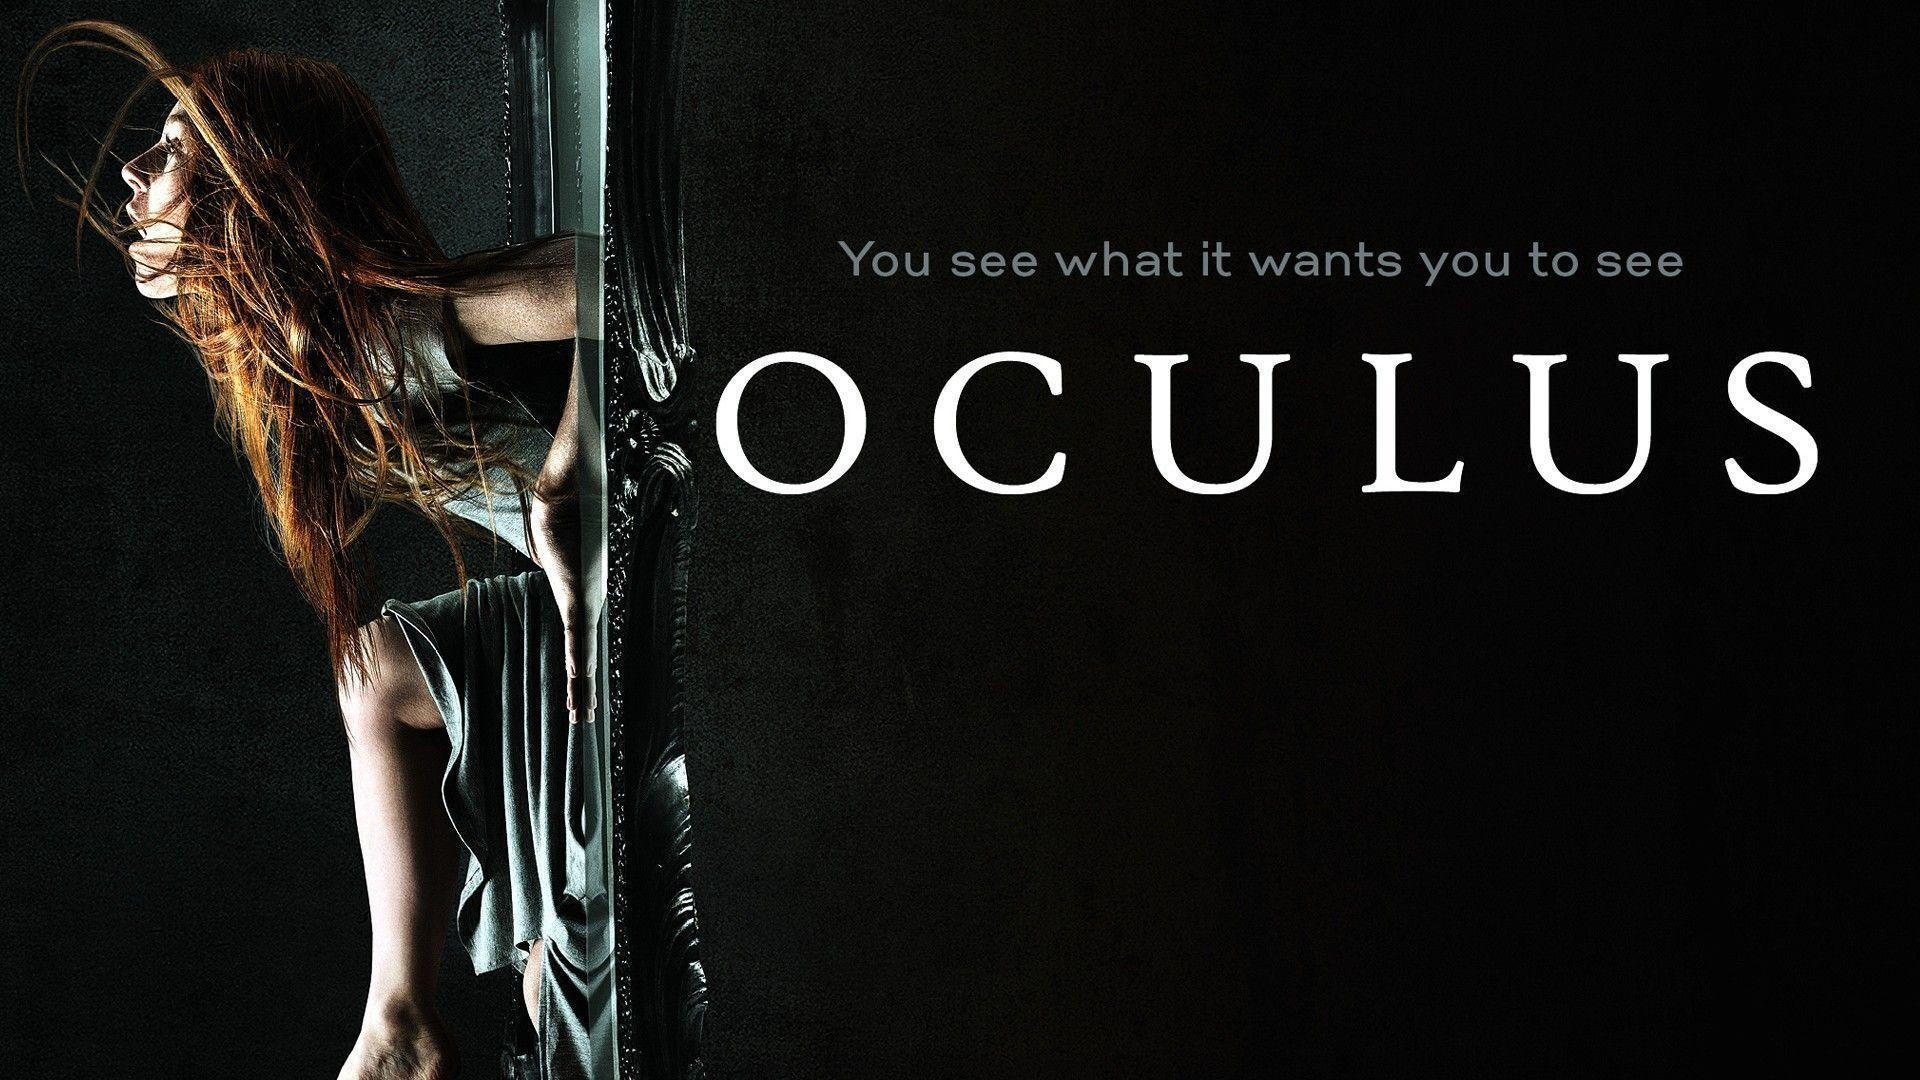 1920x1080 New Oculus 2014 Horror Movie Poster Wallpaper HD for Desktop .